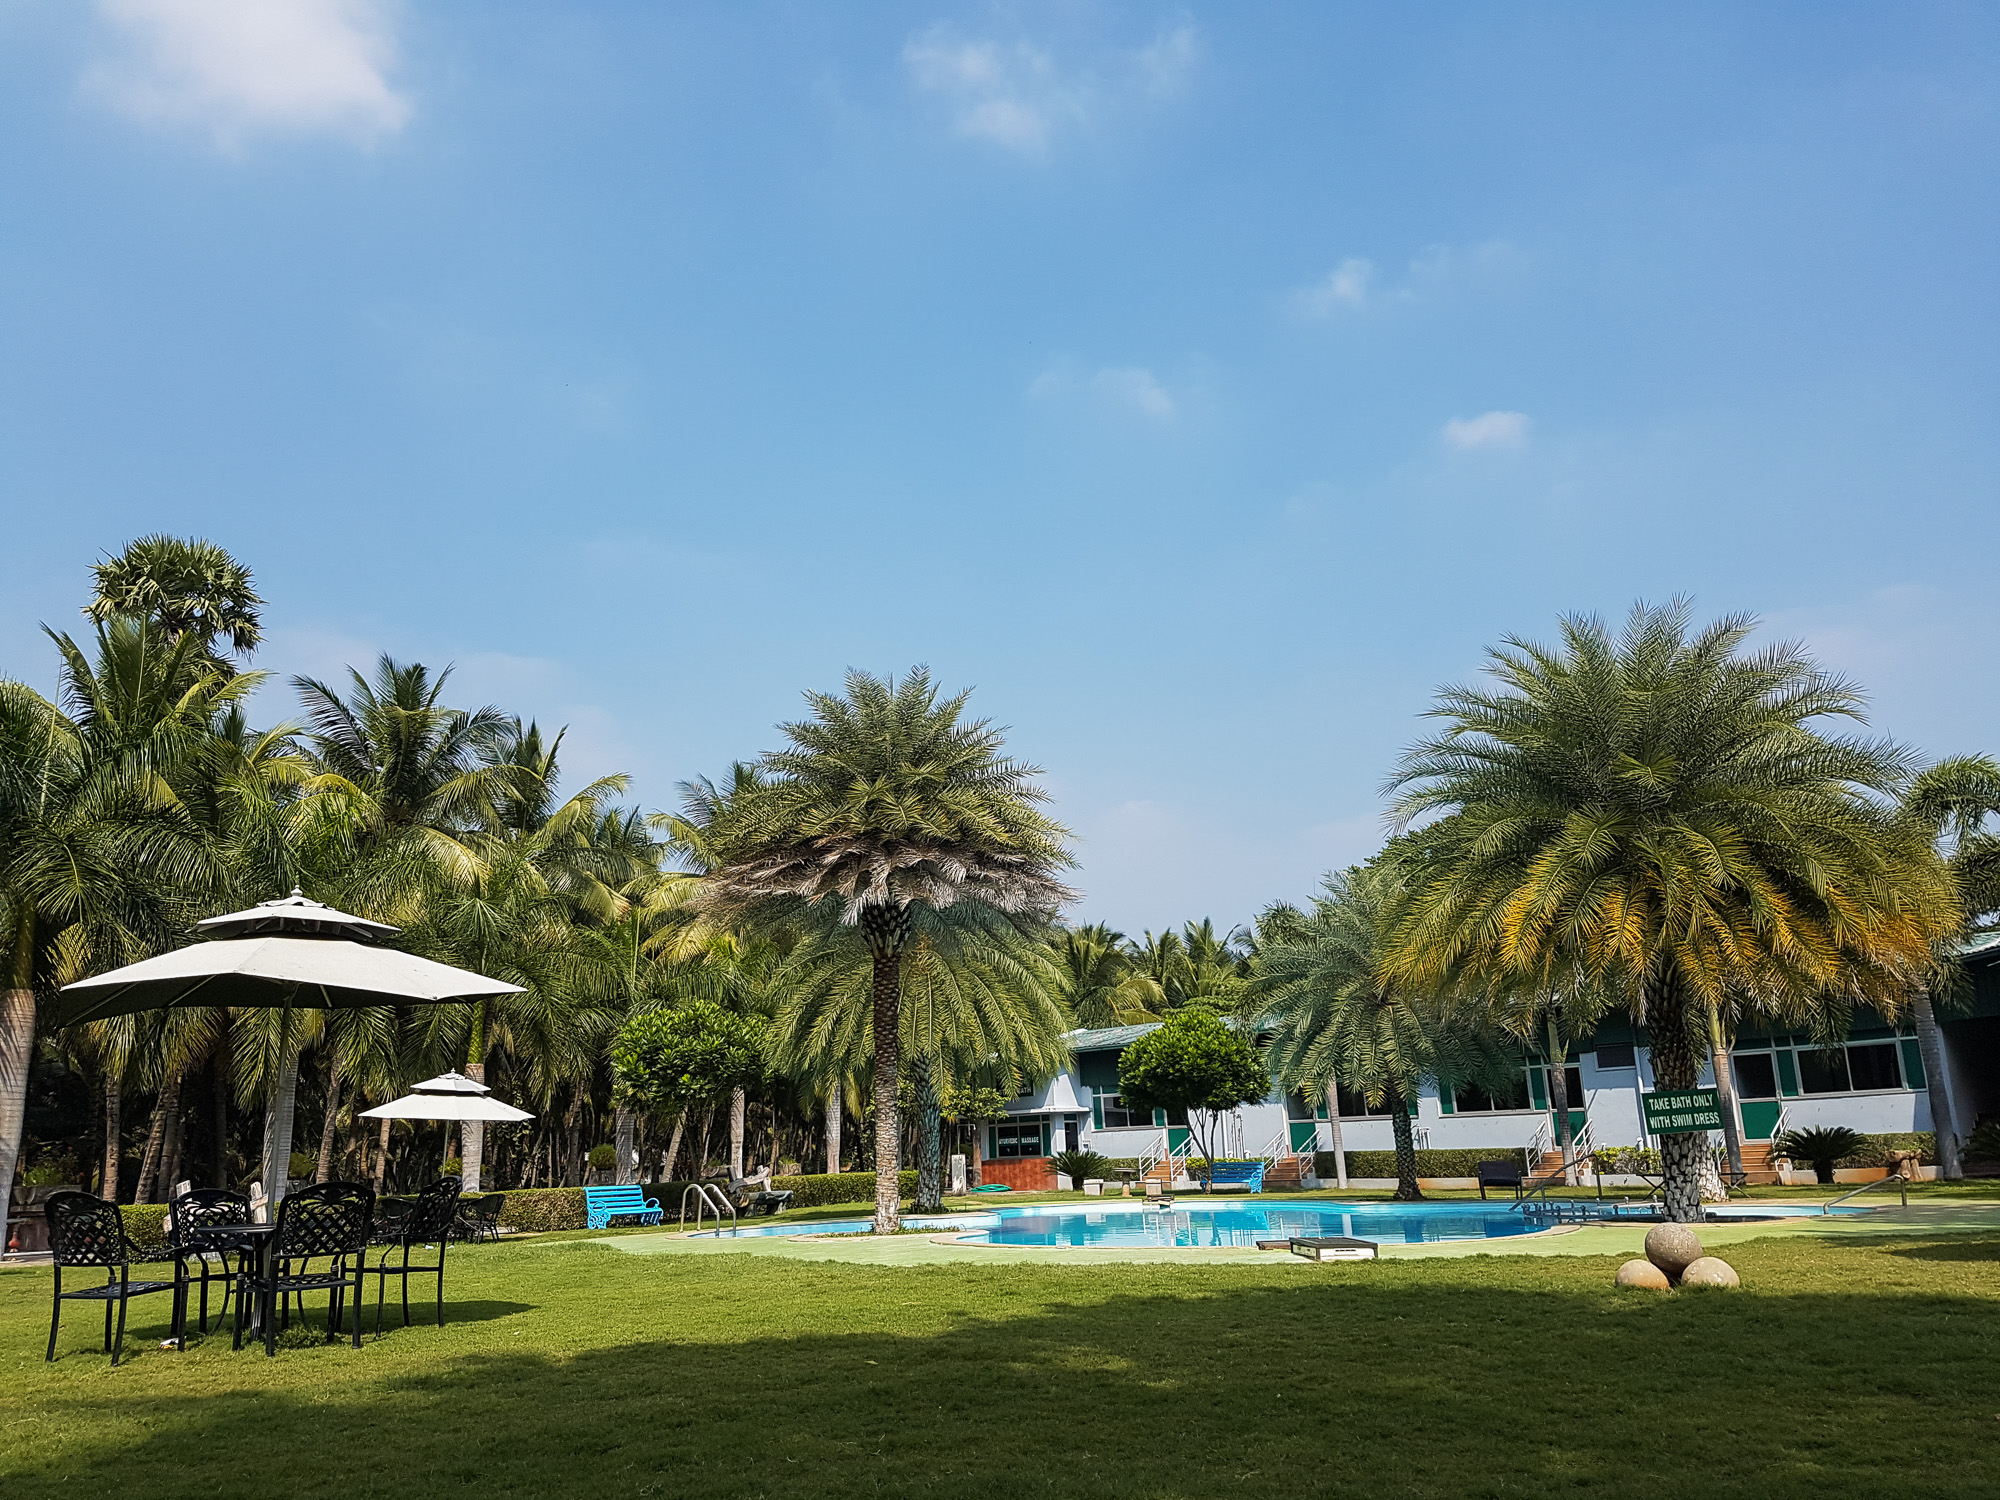 Sakthi River Resort